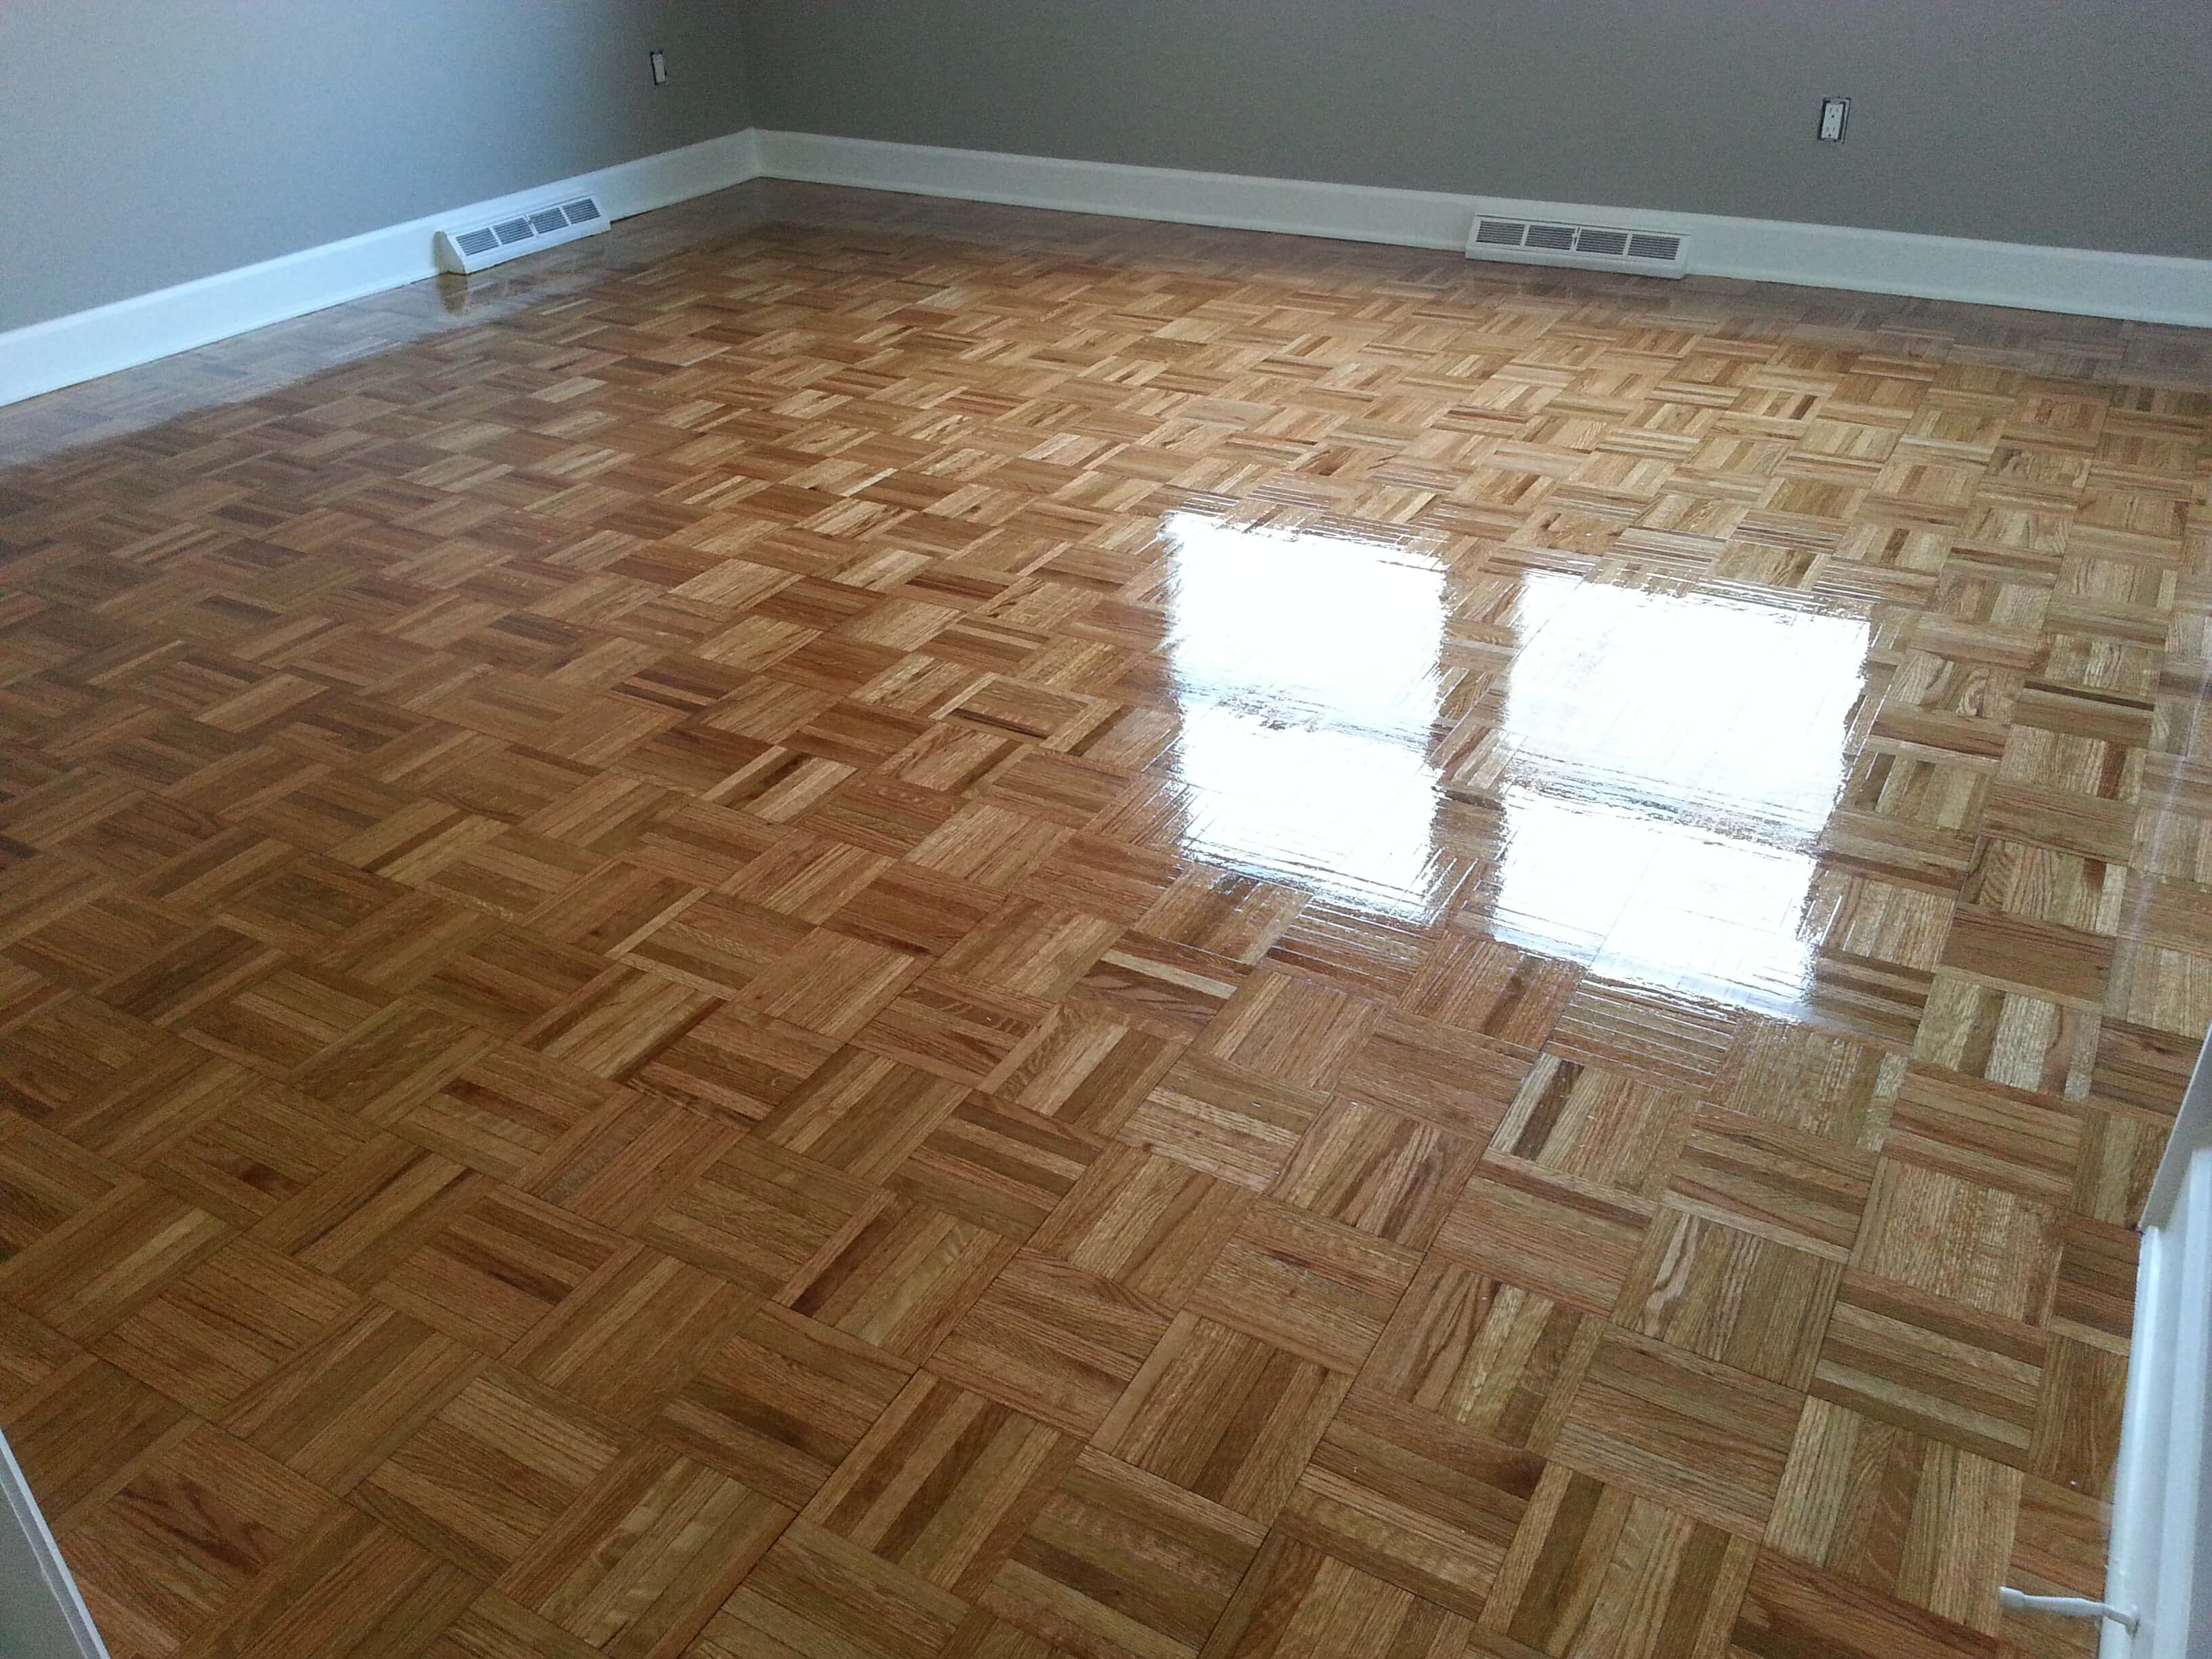 A refinished parquet hardwood floor done by Fabulous Floors Columbia